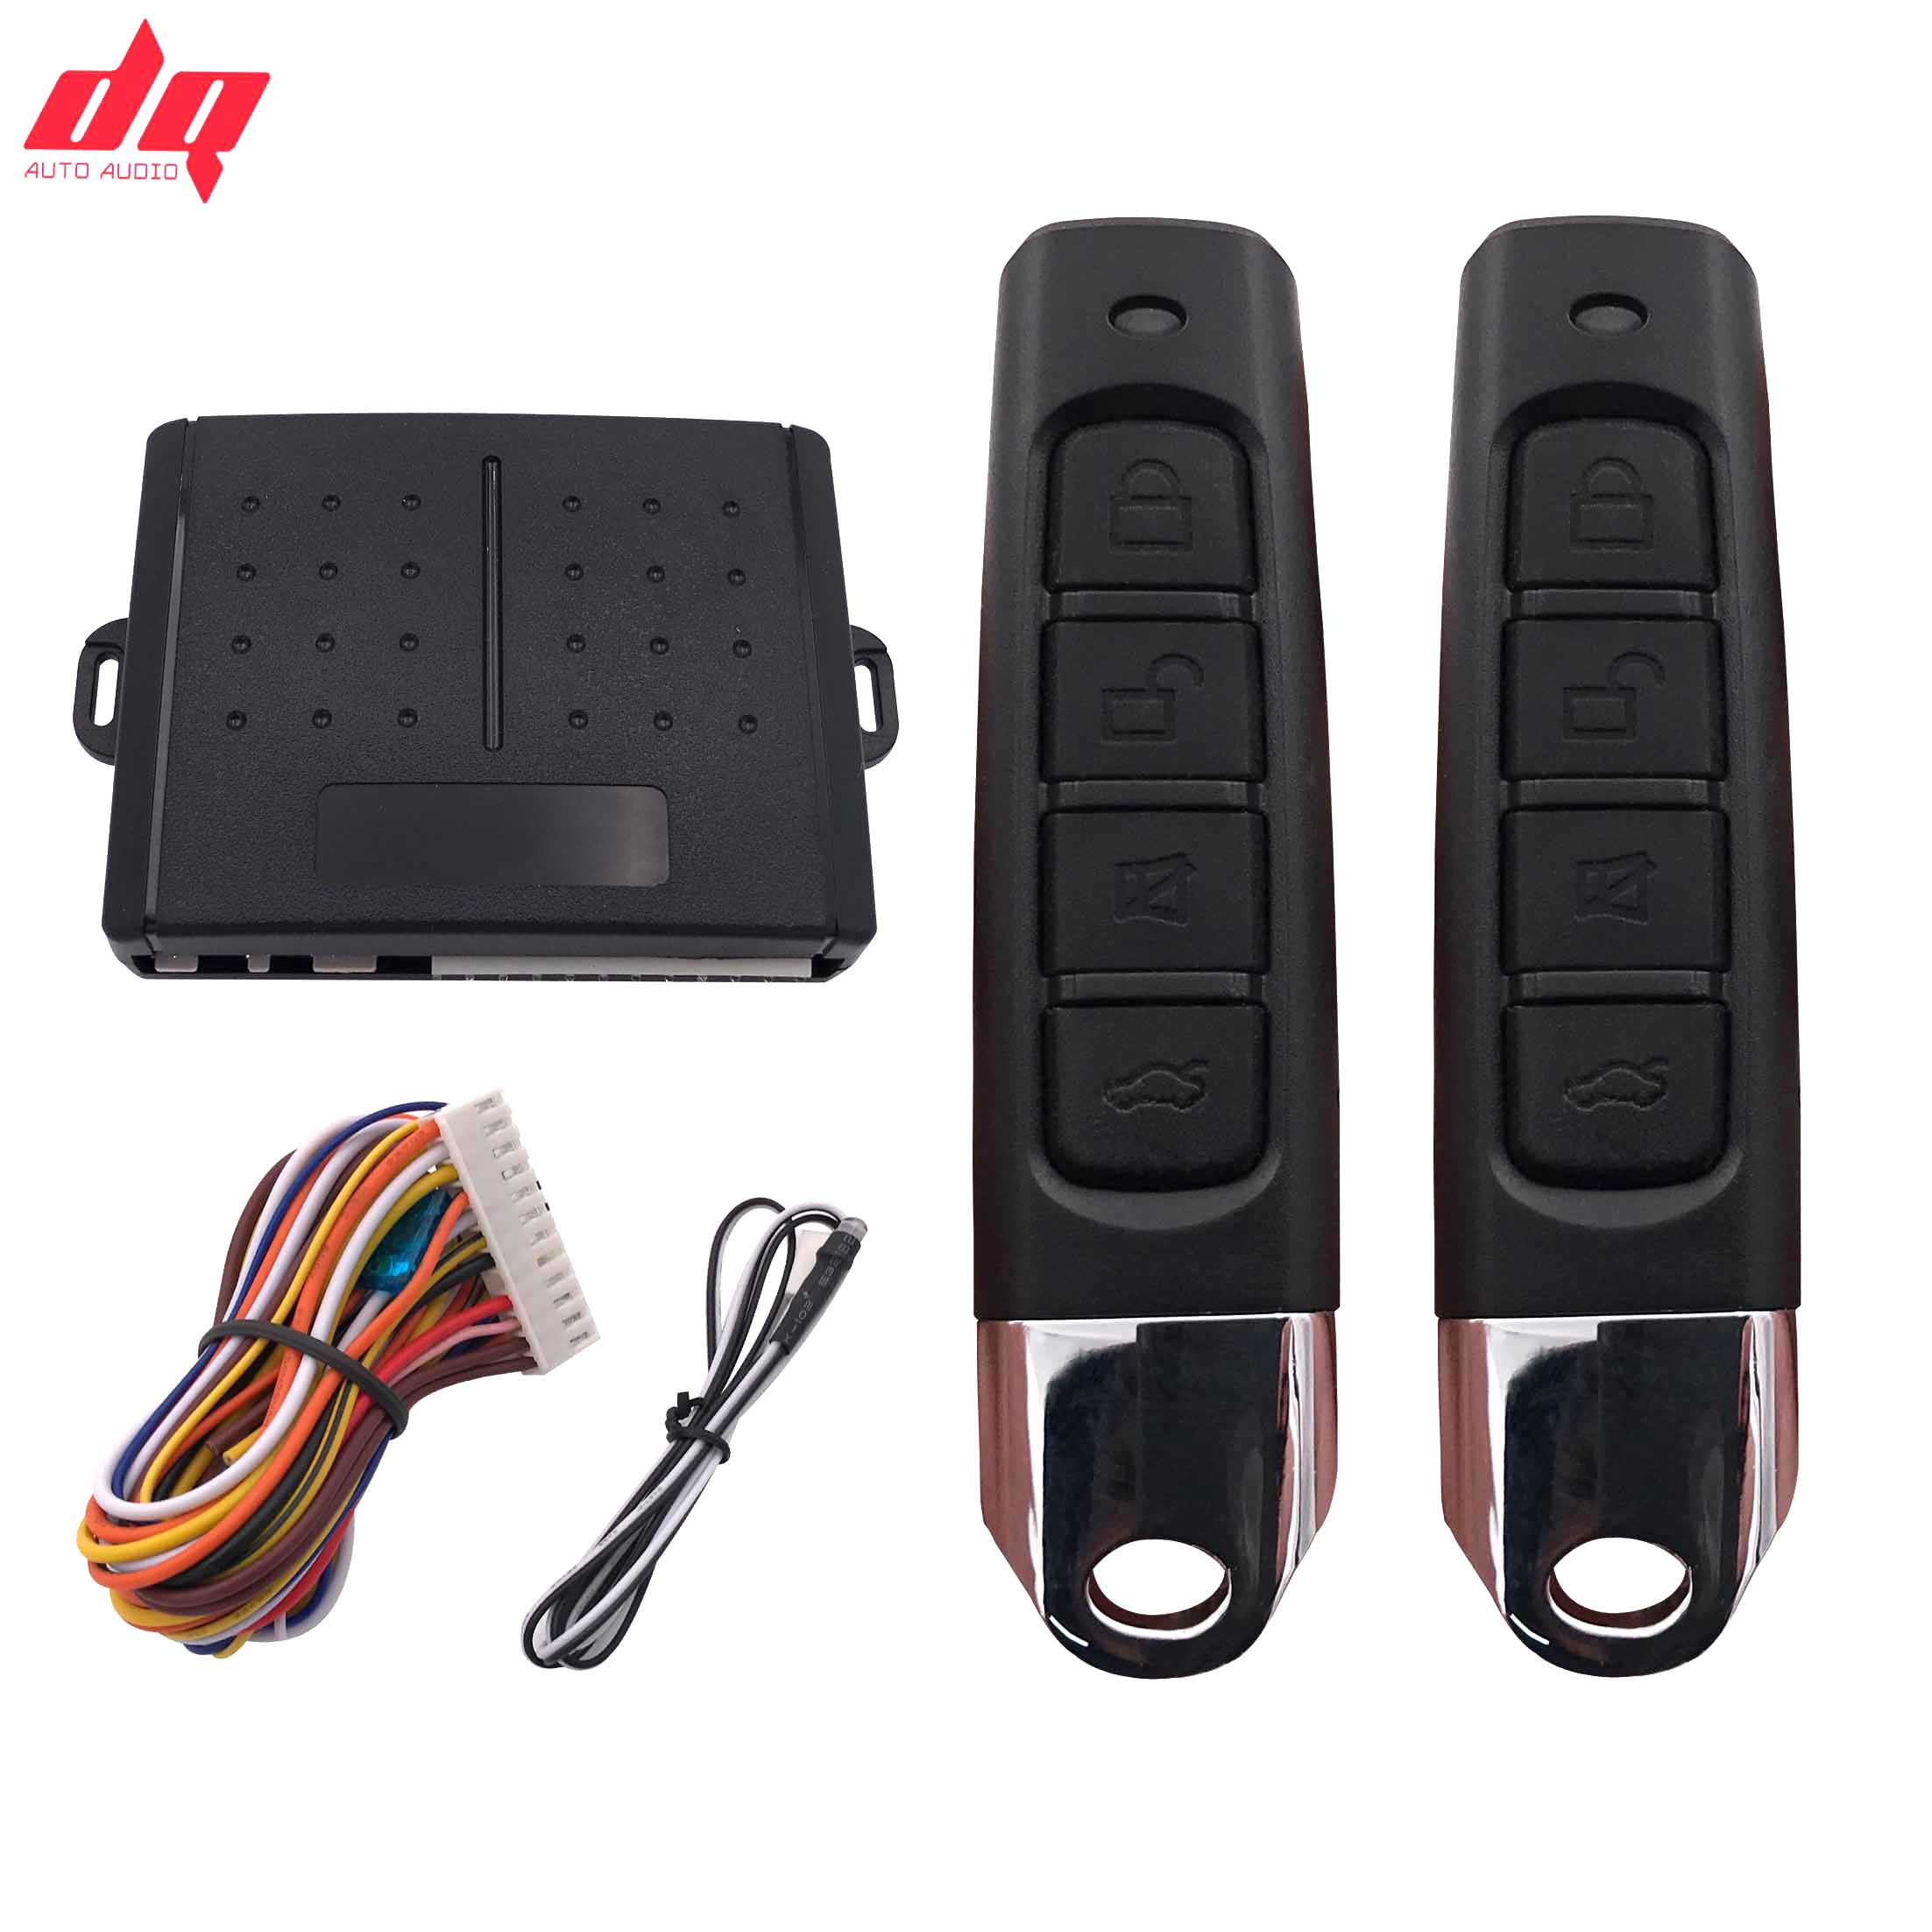 Car Alarm 12+4 Car Auto Remote Central Kit Door Lock Locking System With Key Central Locking with Remote Control